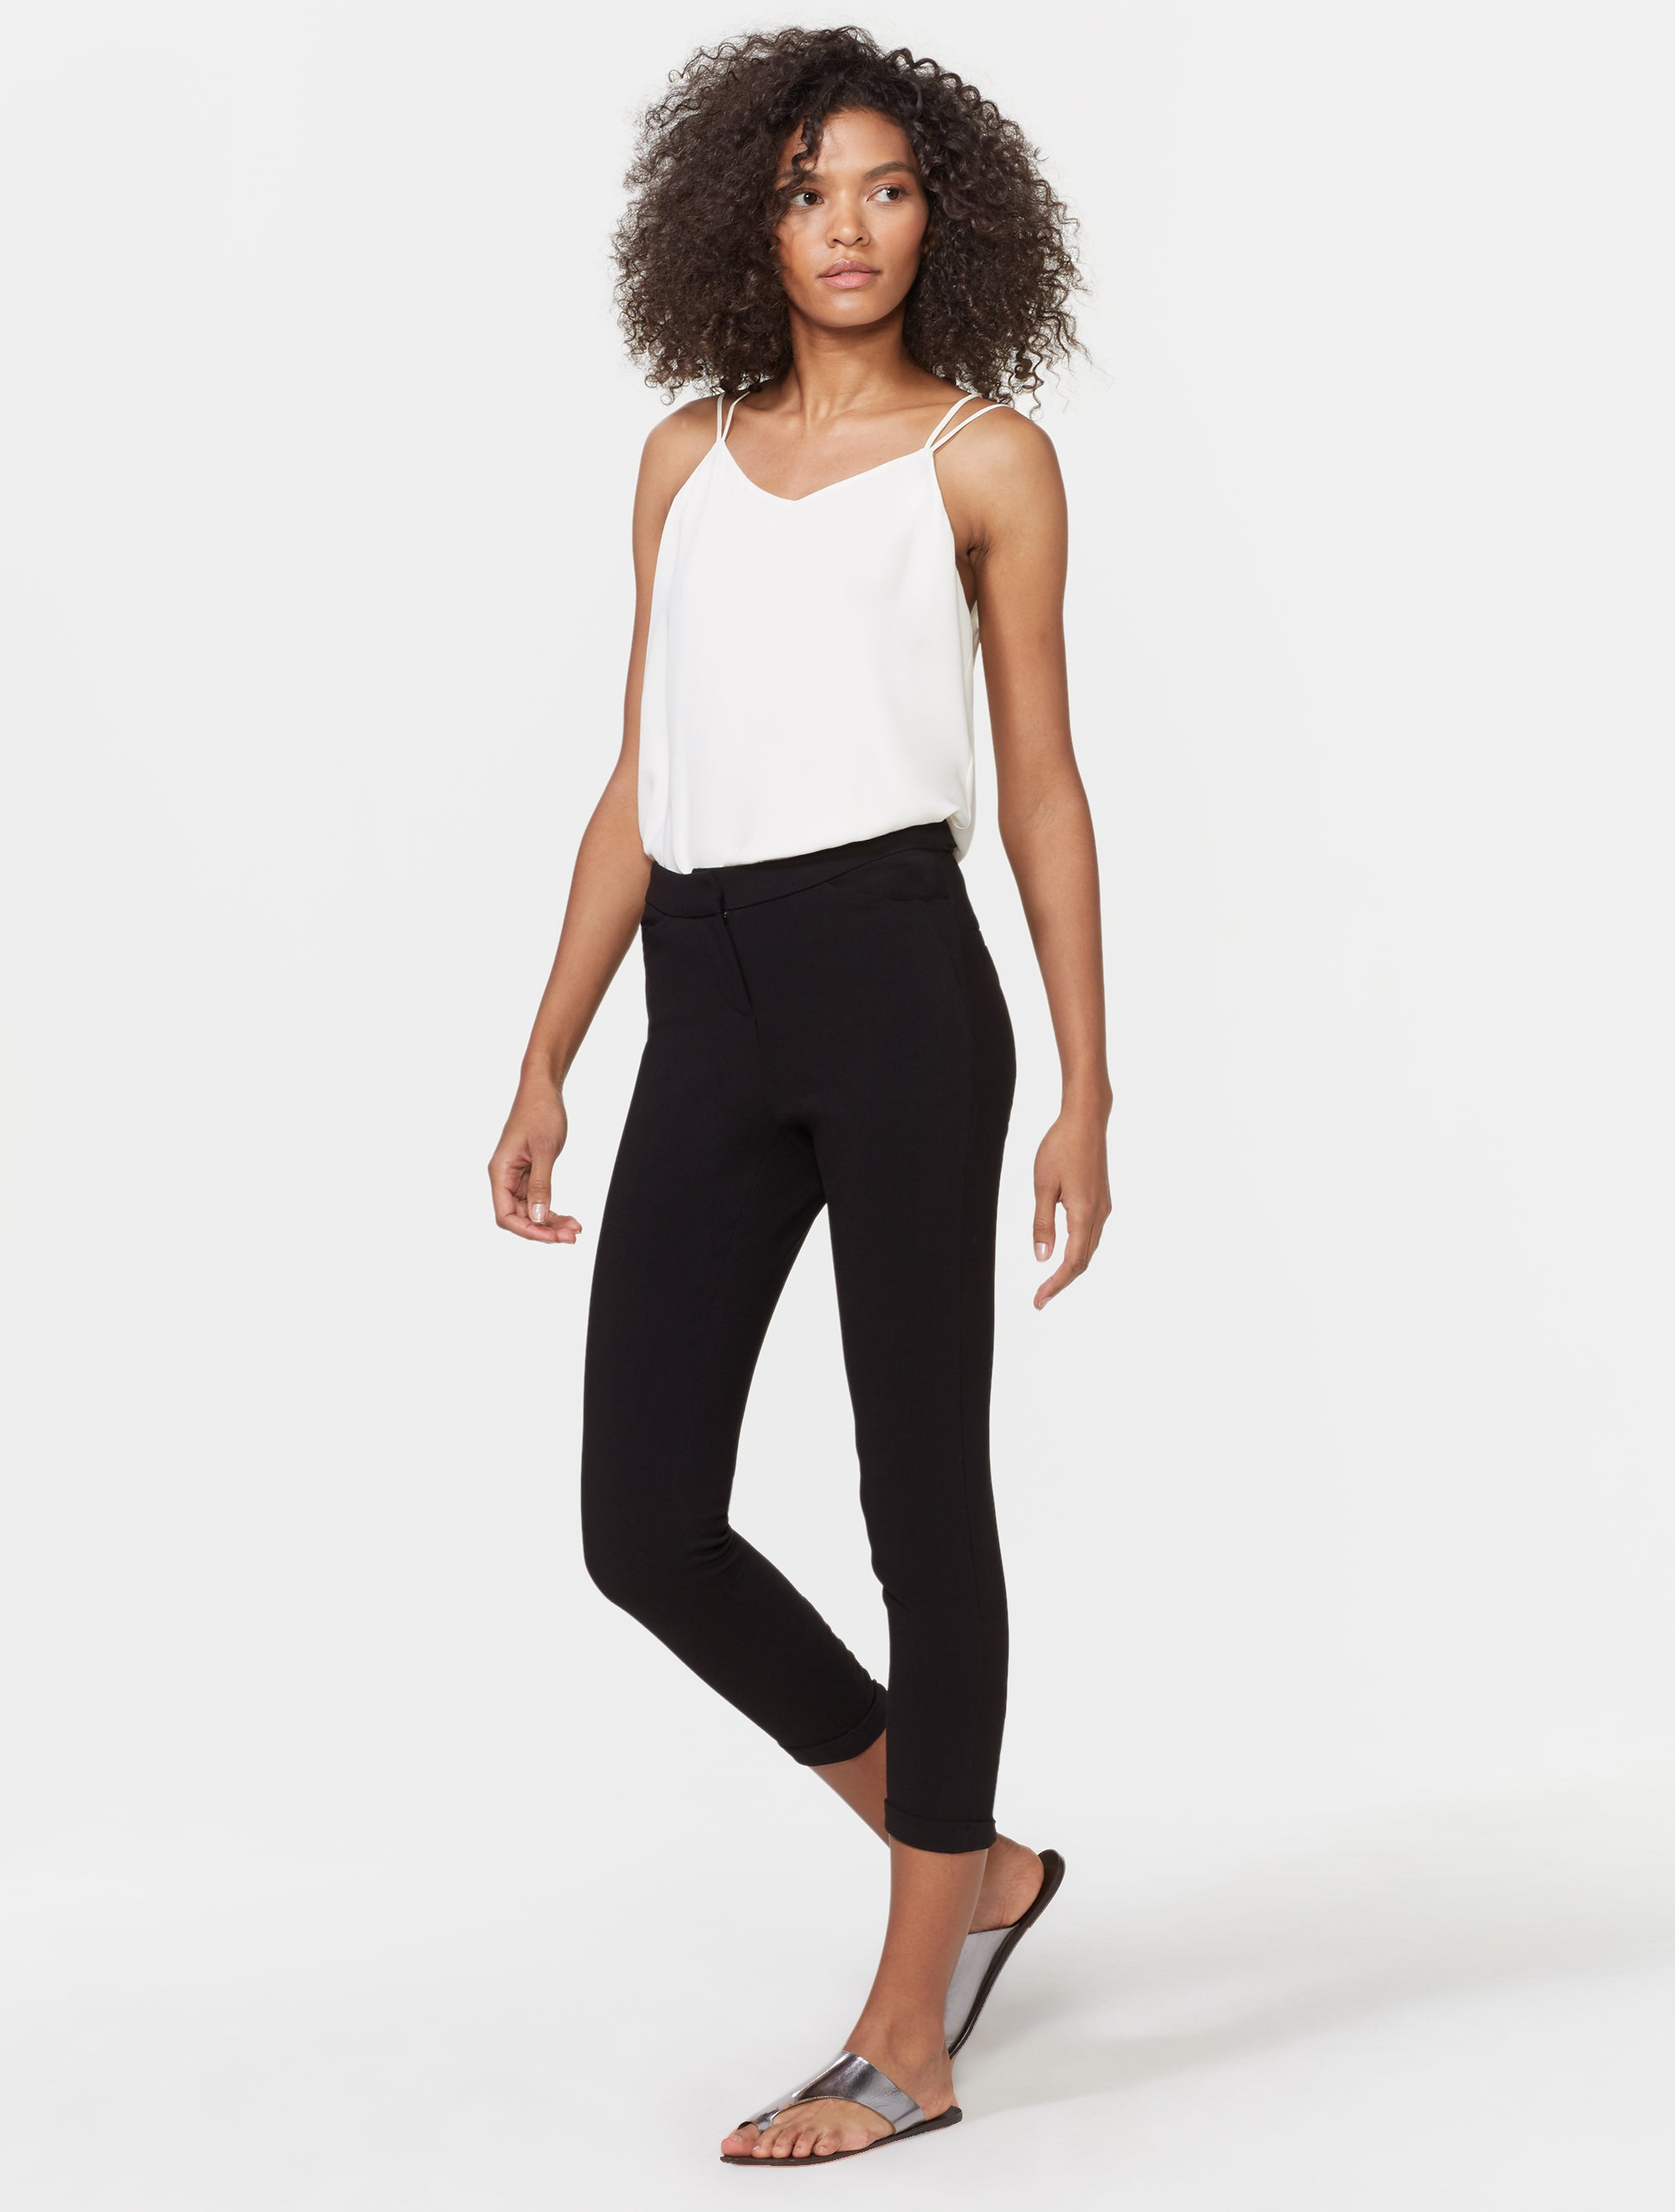 TAPERED ANKLE ZIP PANTS - Halston